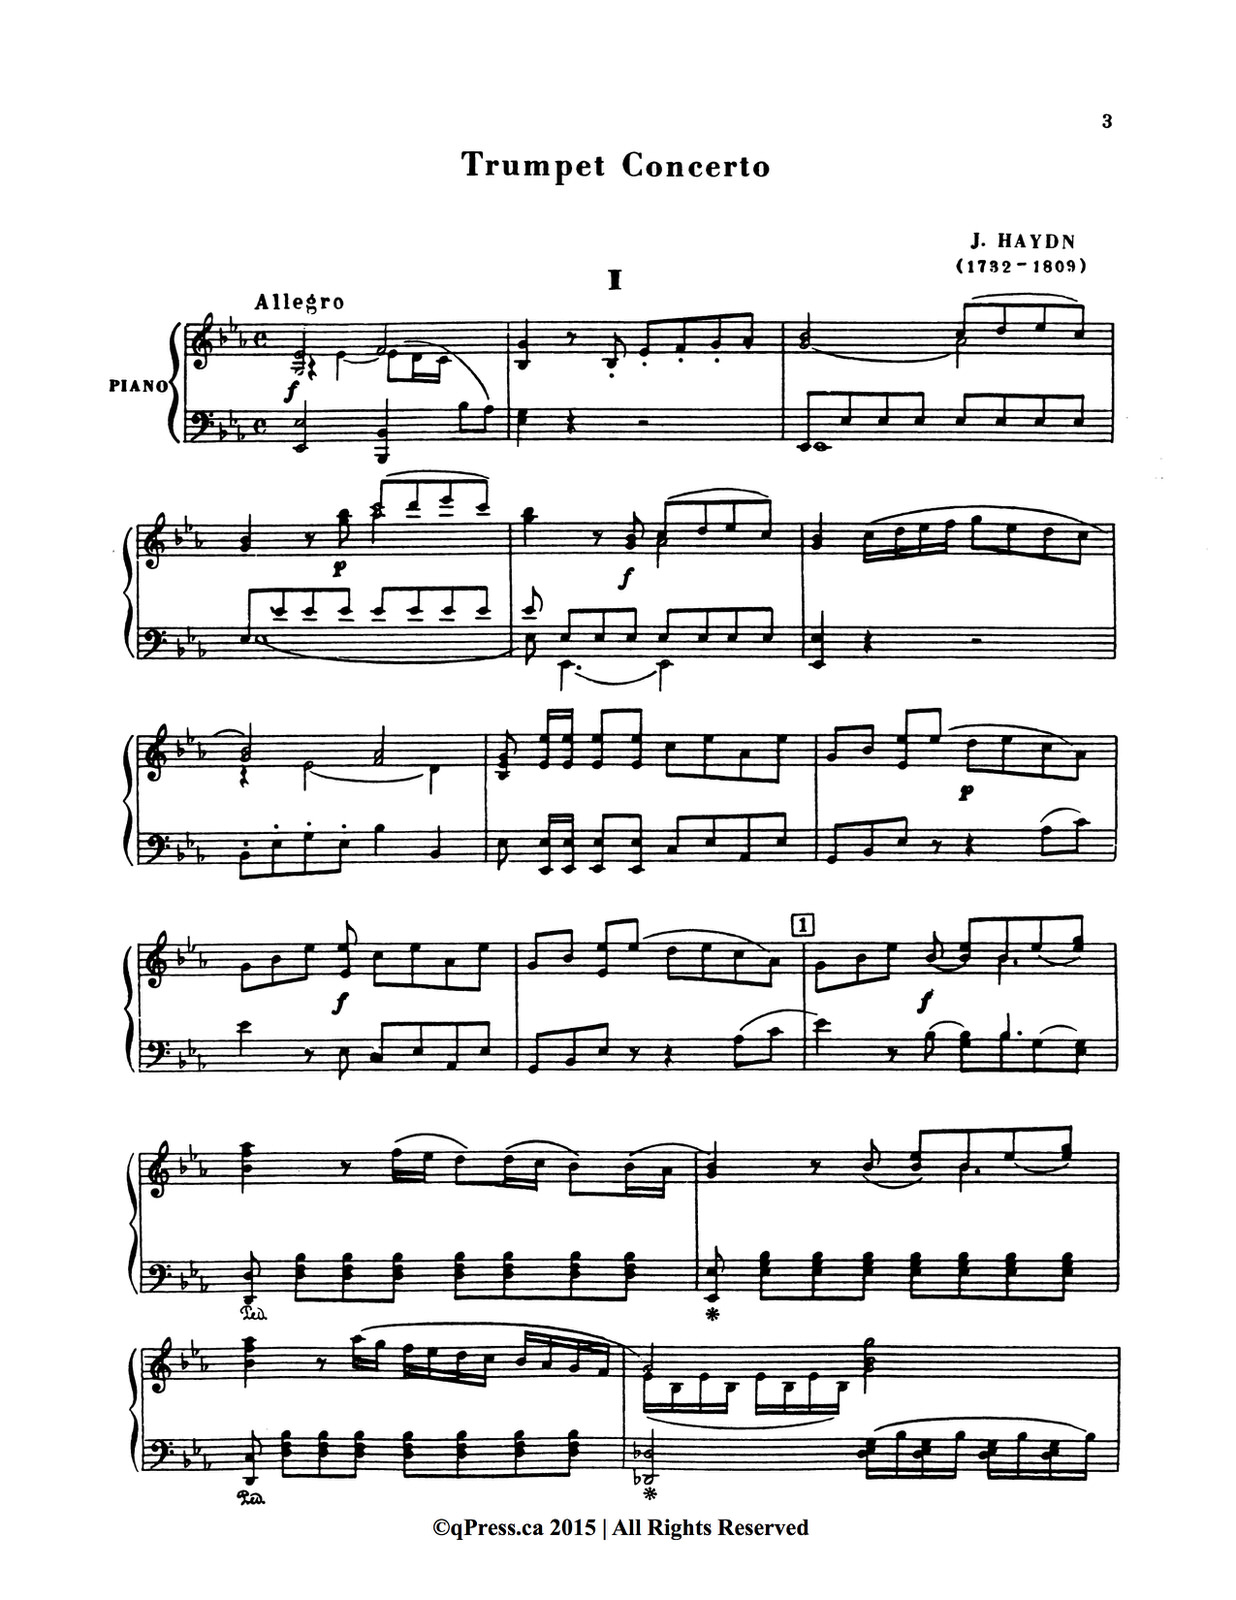 J. Haydn: Trumpet Concerto in E flat, Hob.:VIIe/1